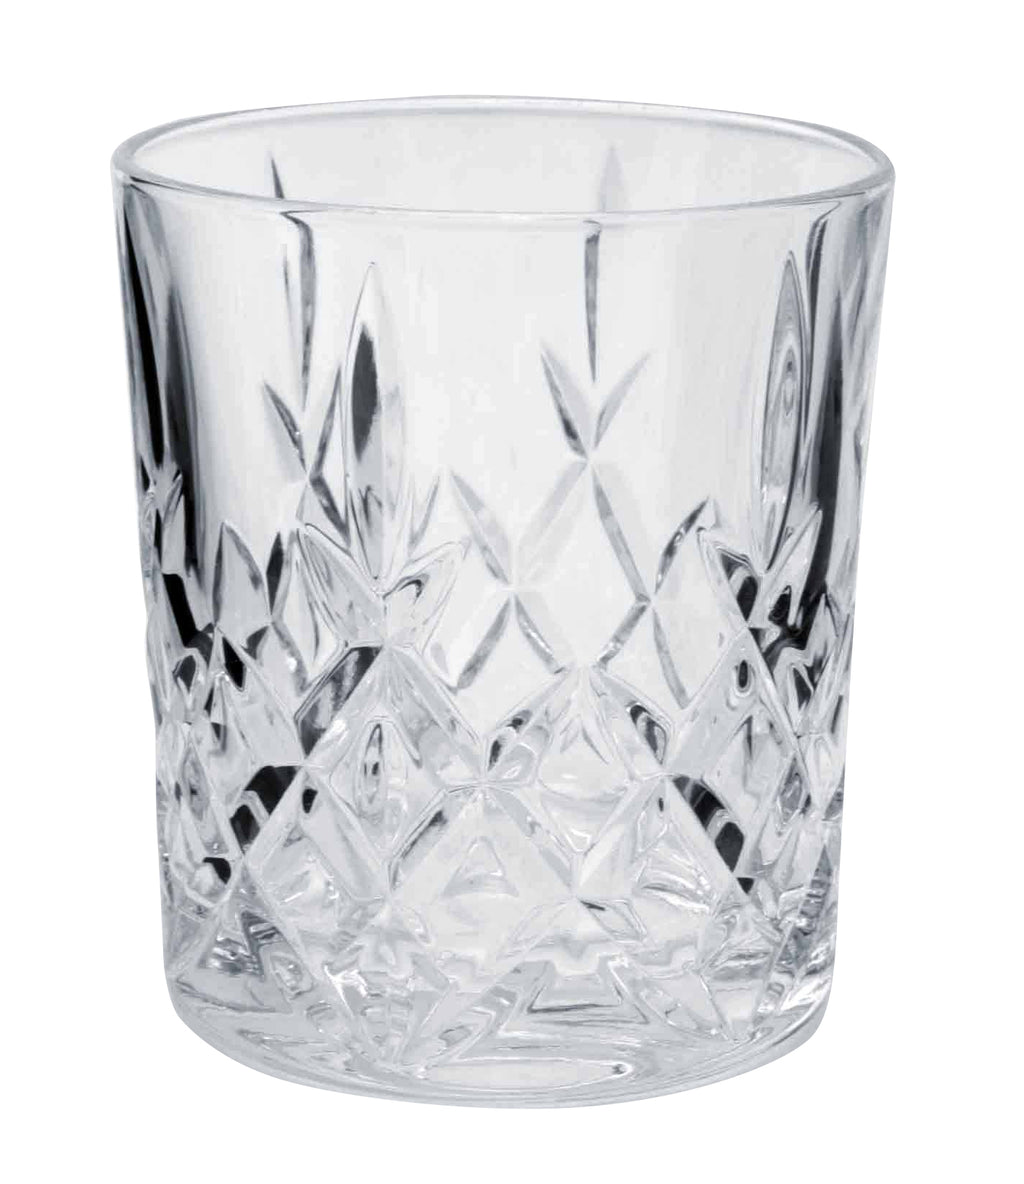 Bohemia Crystal Brixton Old Fashioned Tumbler 320ml Set 6